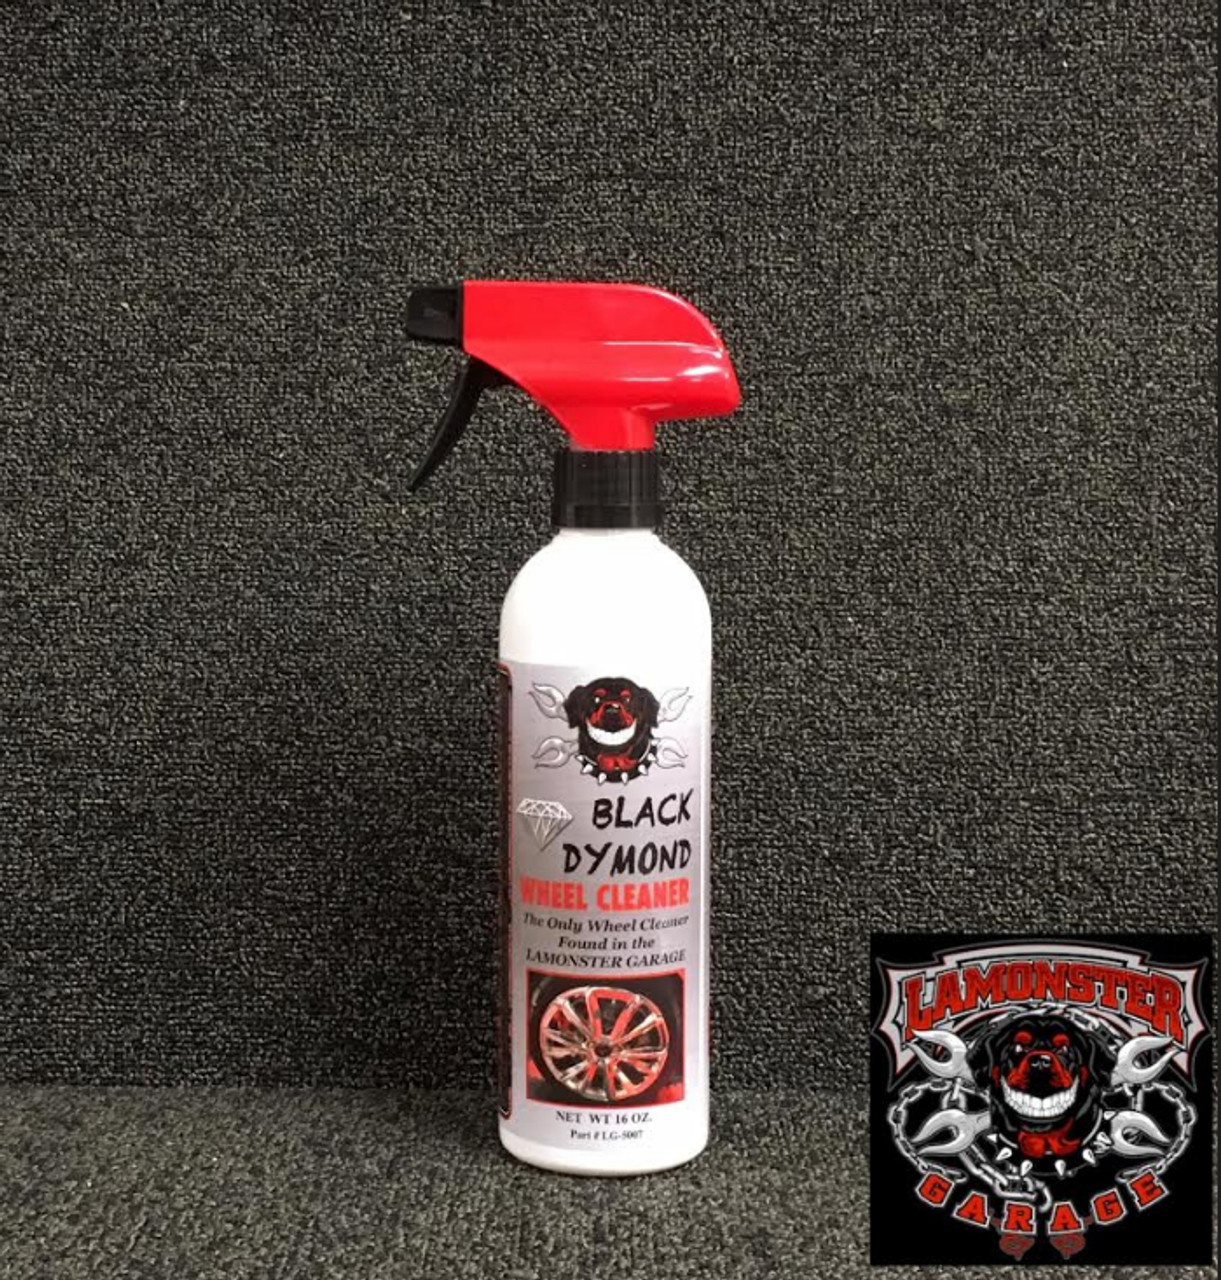 Lamonster Black Dymond Wheel Cleaner (LG-5007)